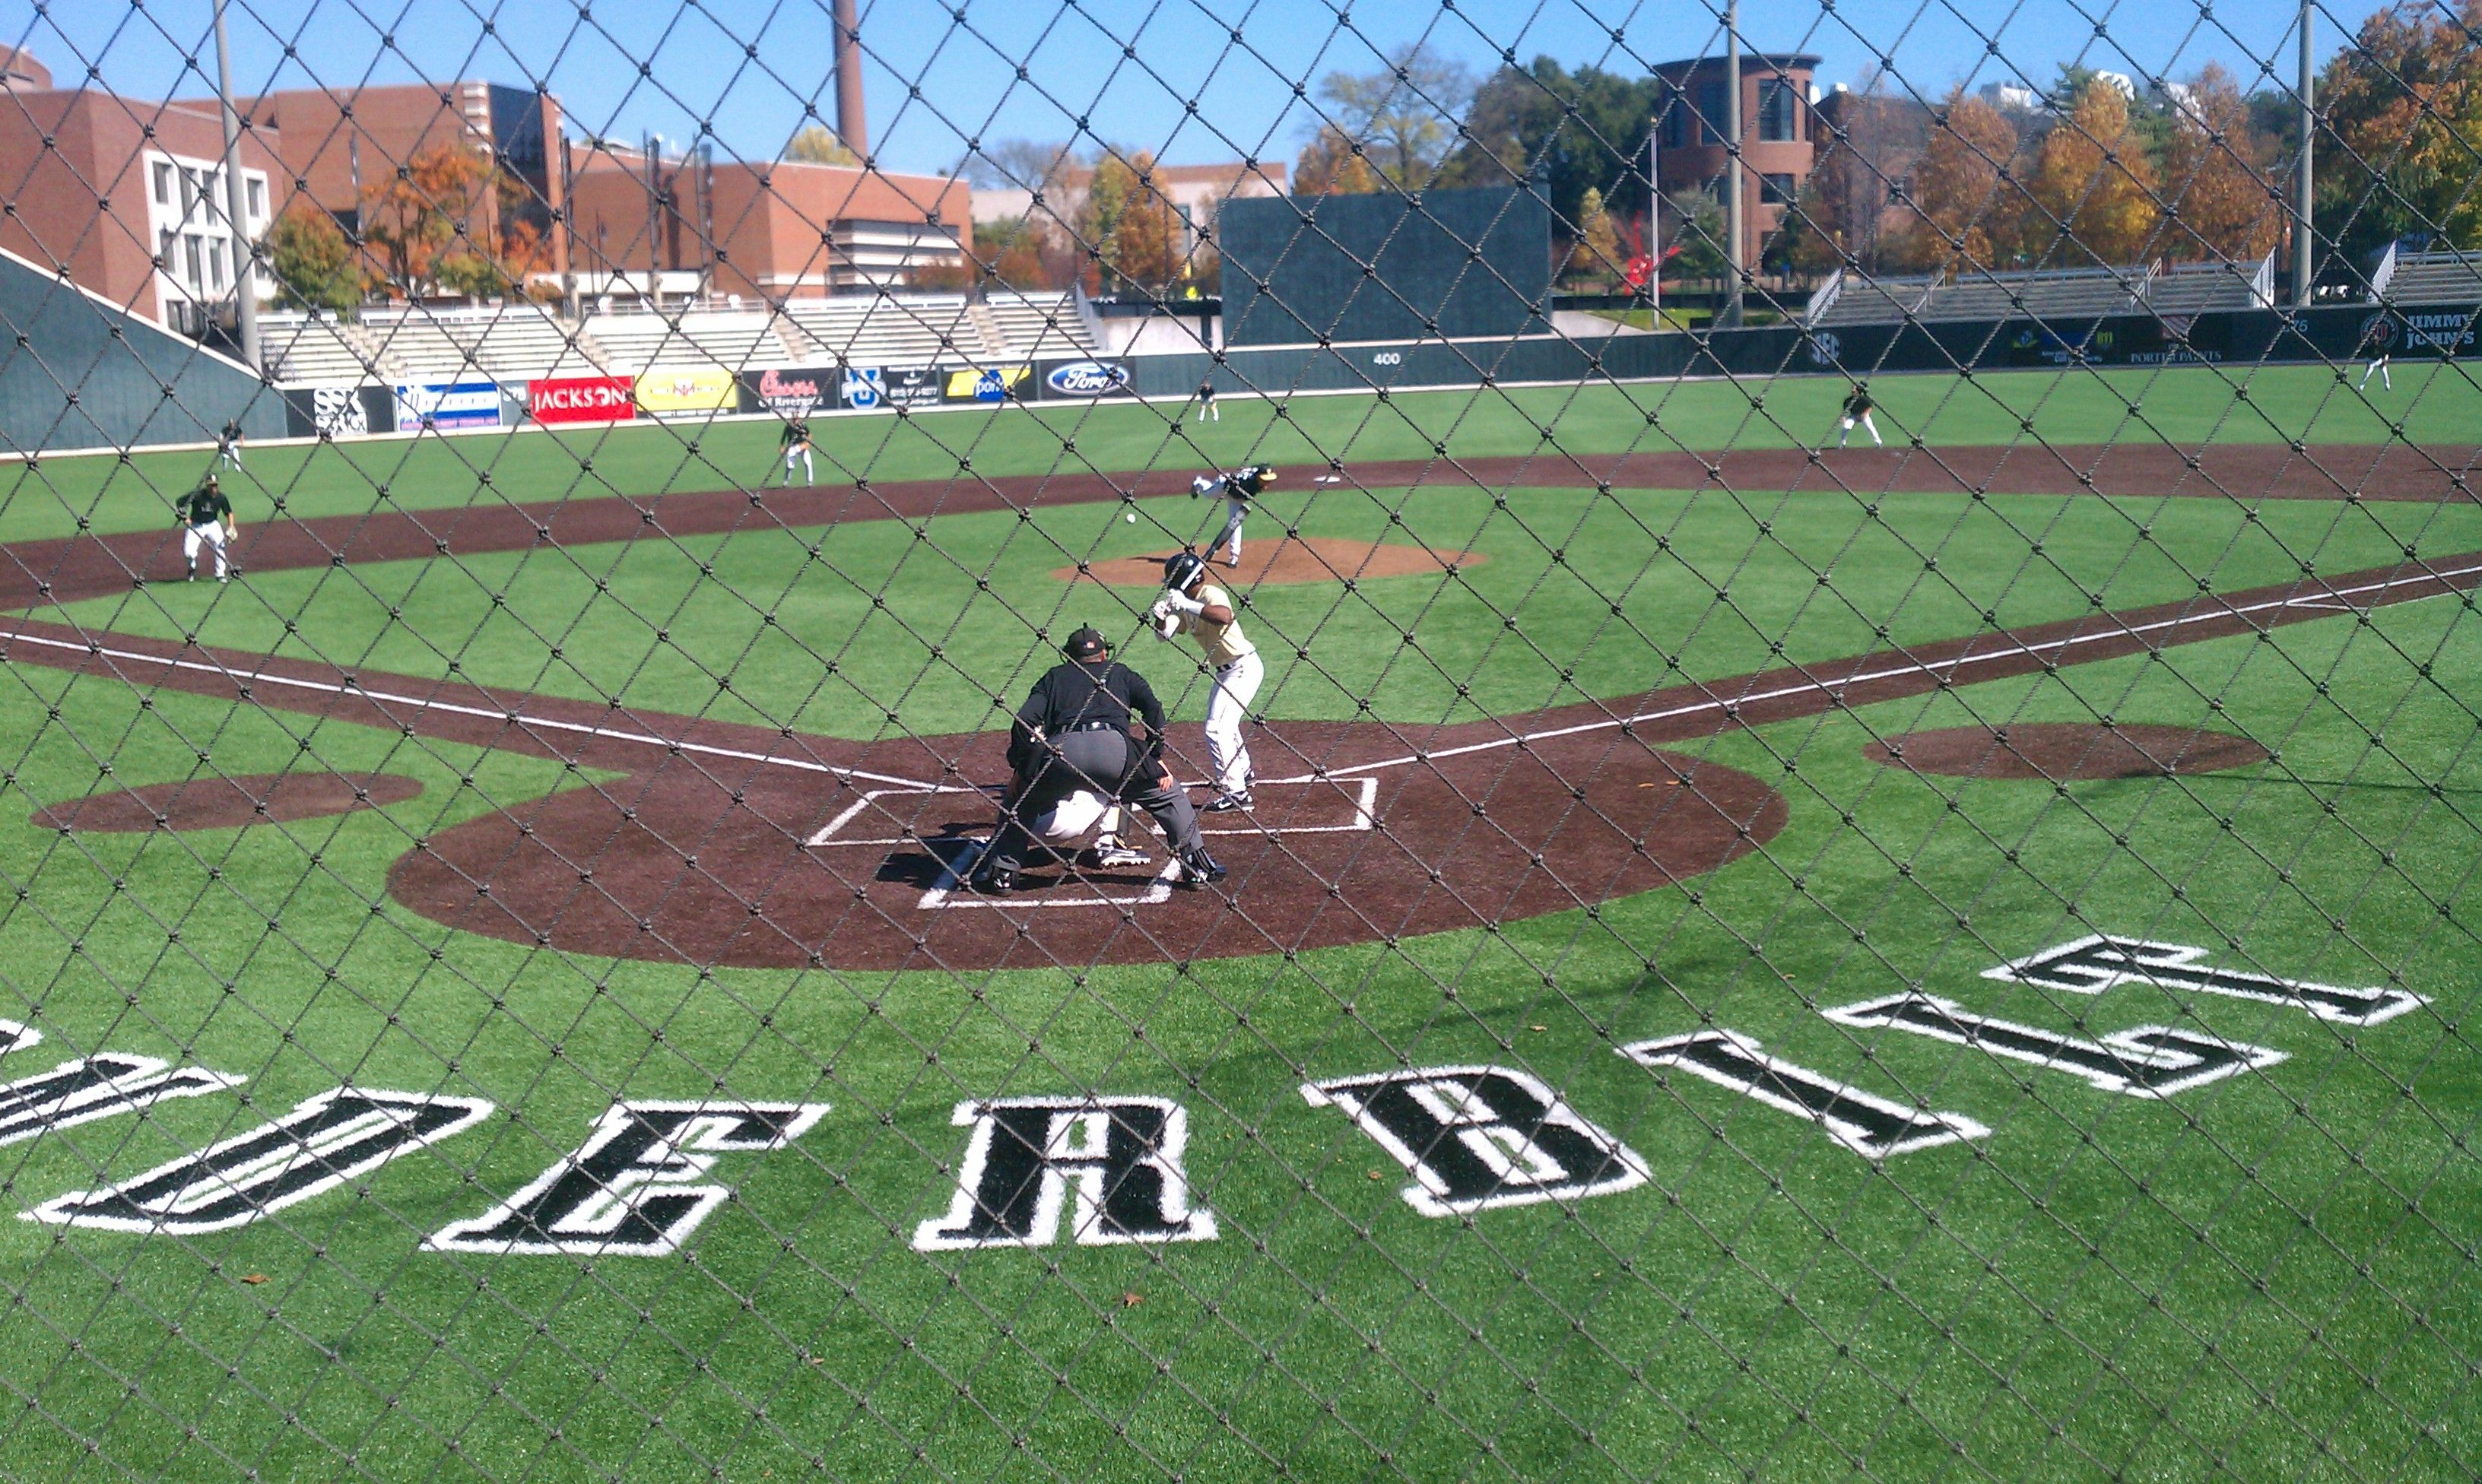 Vanderbilt University Hawkins Field Travel Baseball College Baseball Vanderbilt University